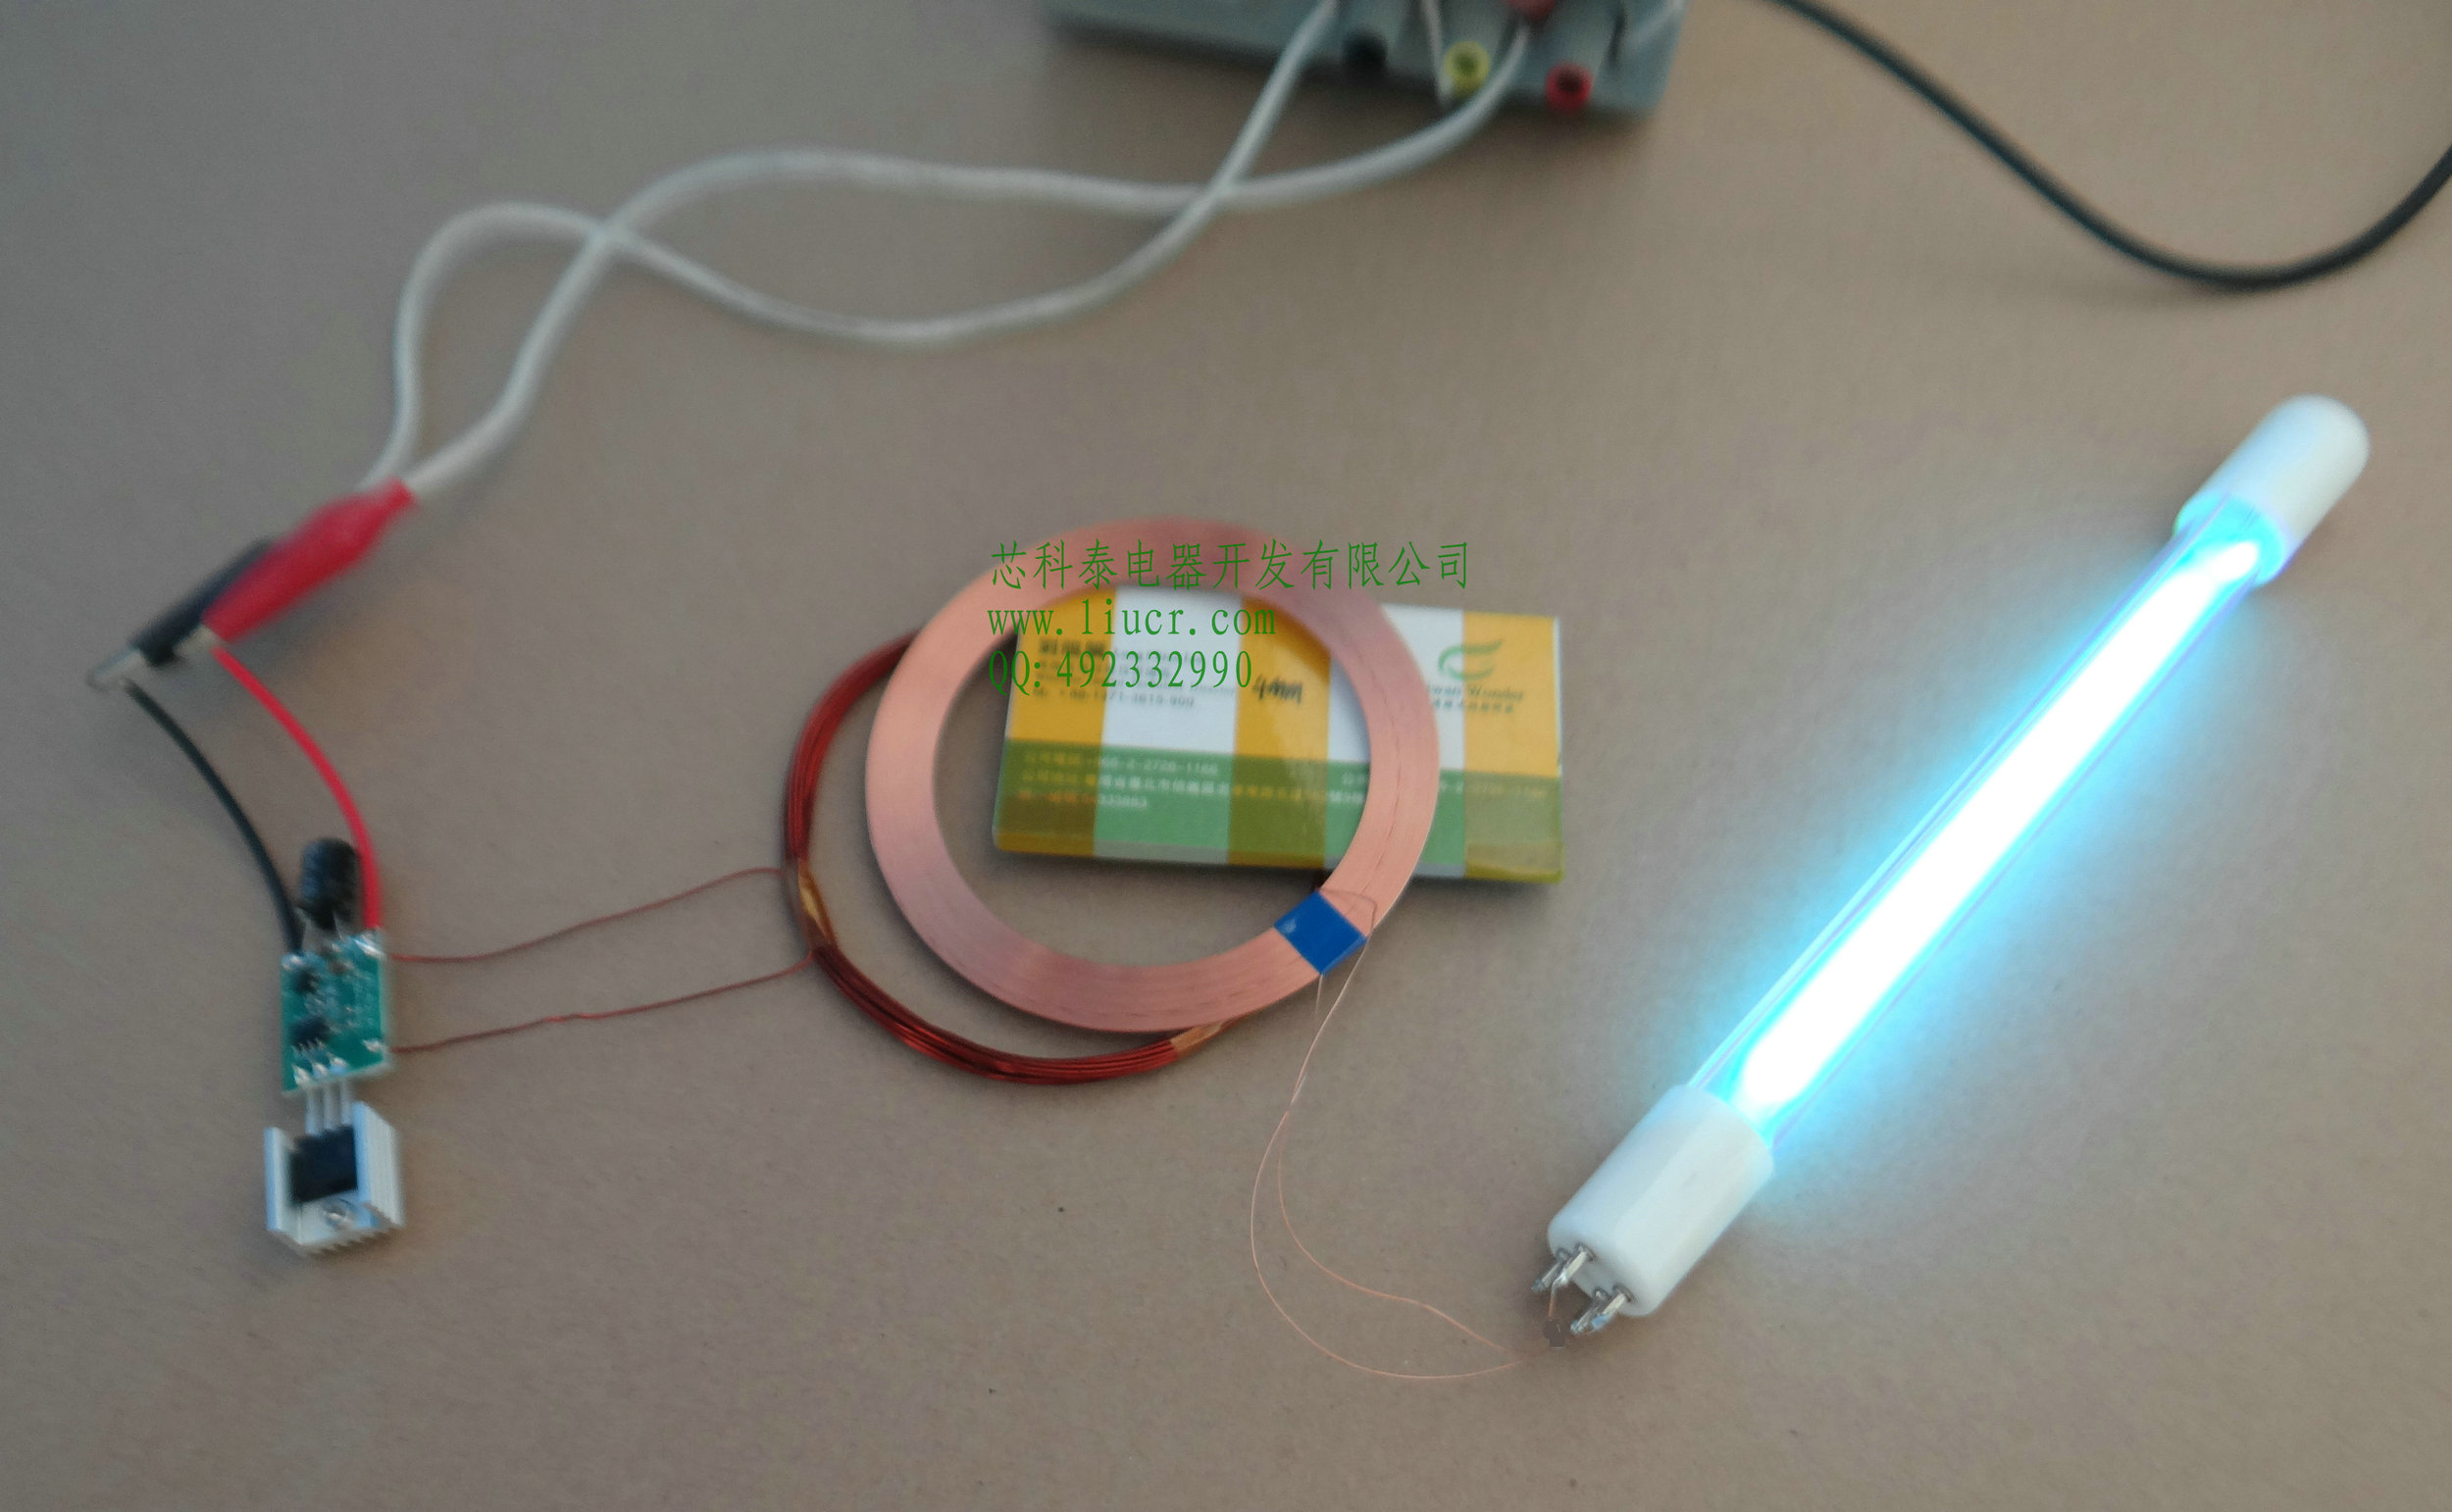 10W~30W24V power supply ultraviolet lamp wireless power supply module XKT-801 wireless transmission module<br>